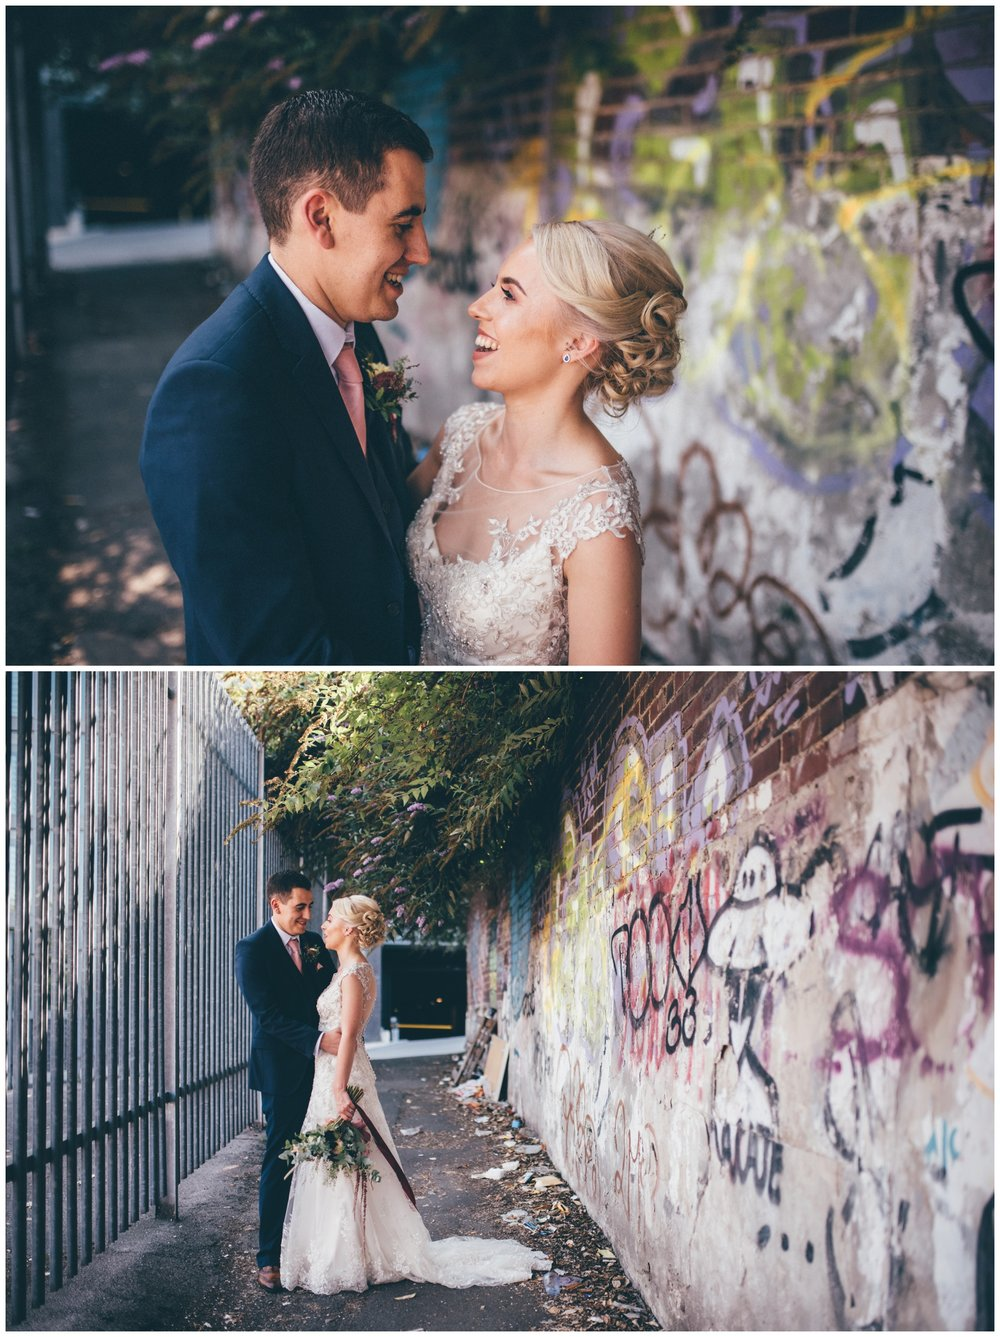 Graffiti covered car park and streets in Sheffield city centre wedding make a great back-drop for bride and groom.